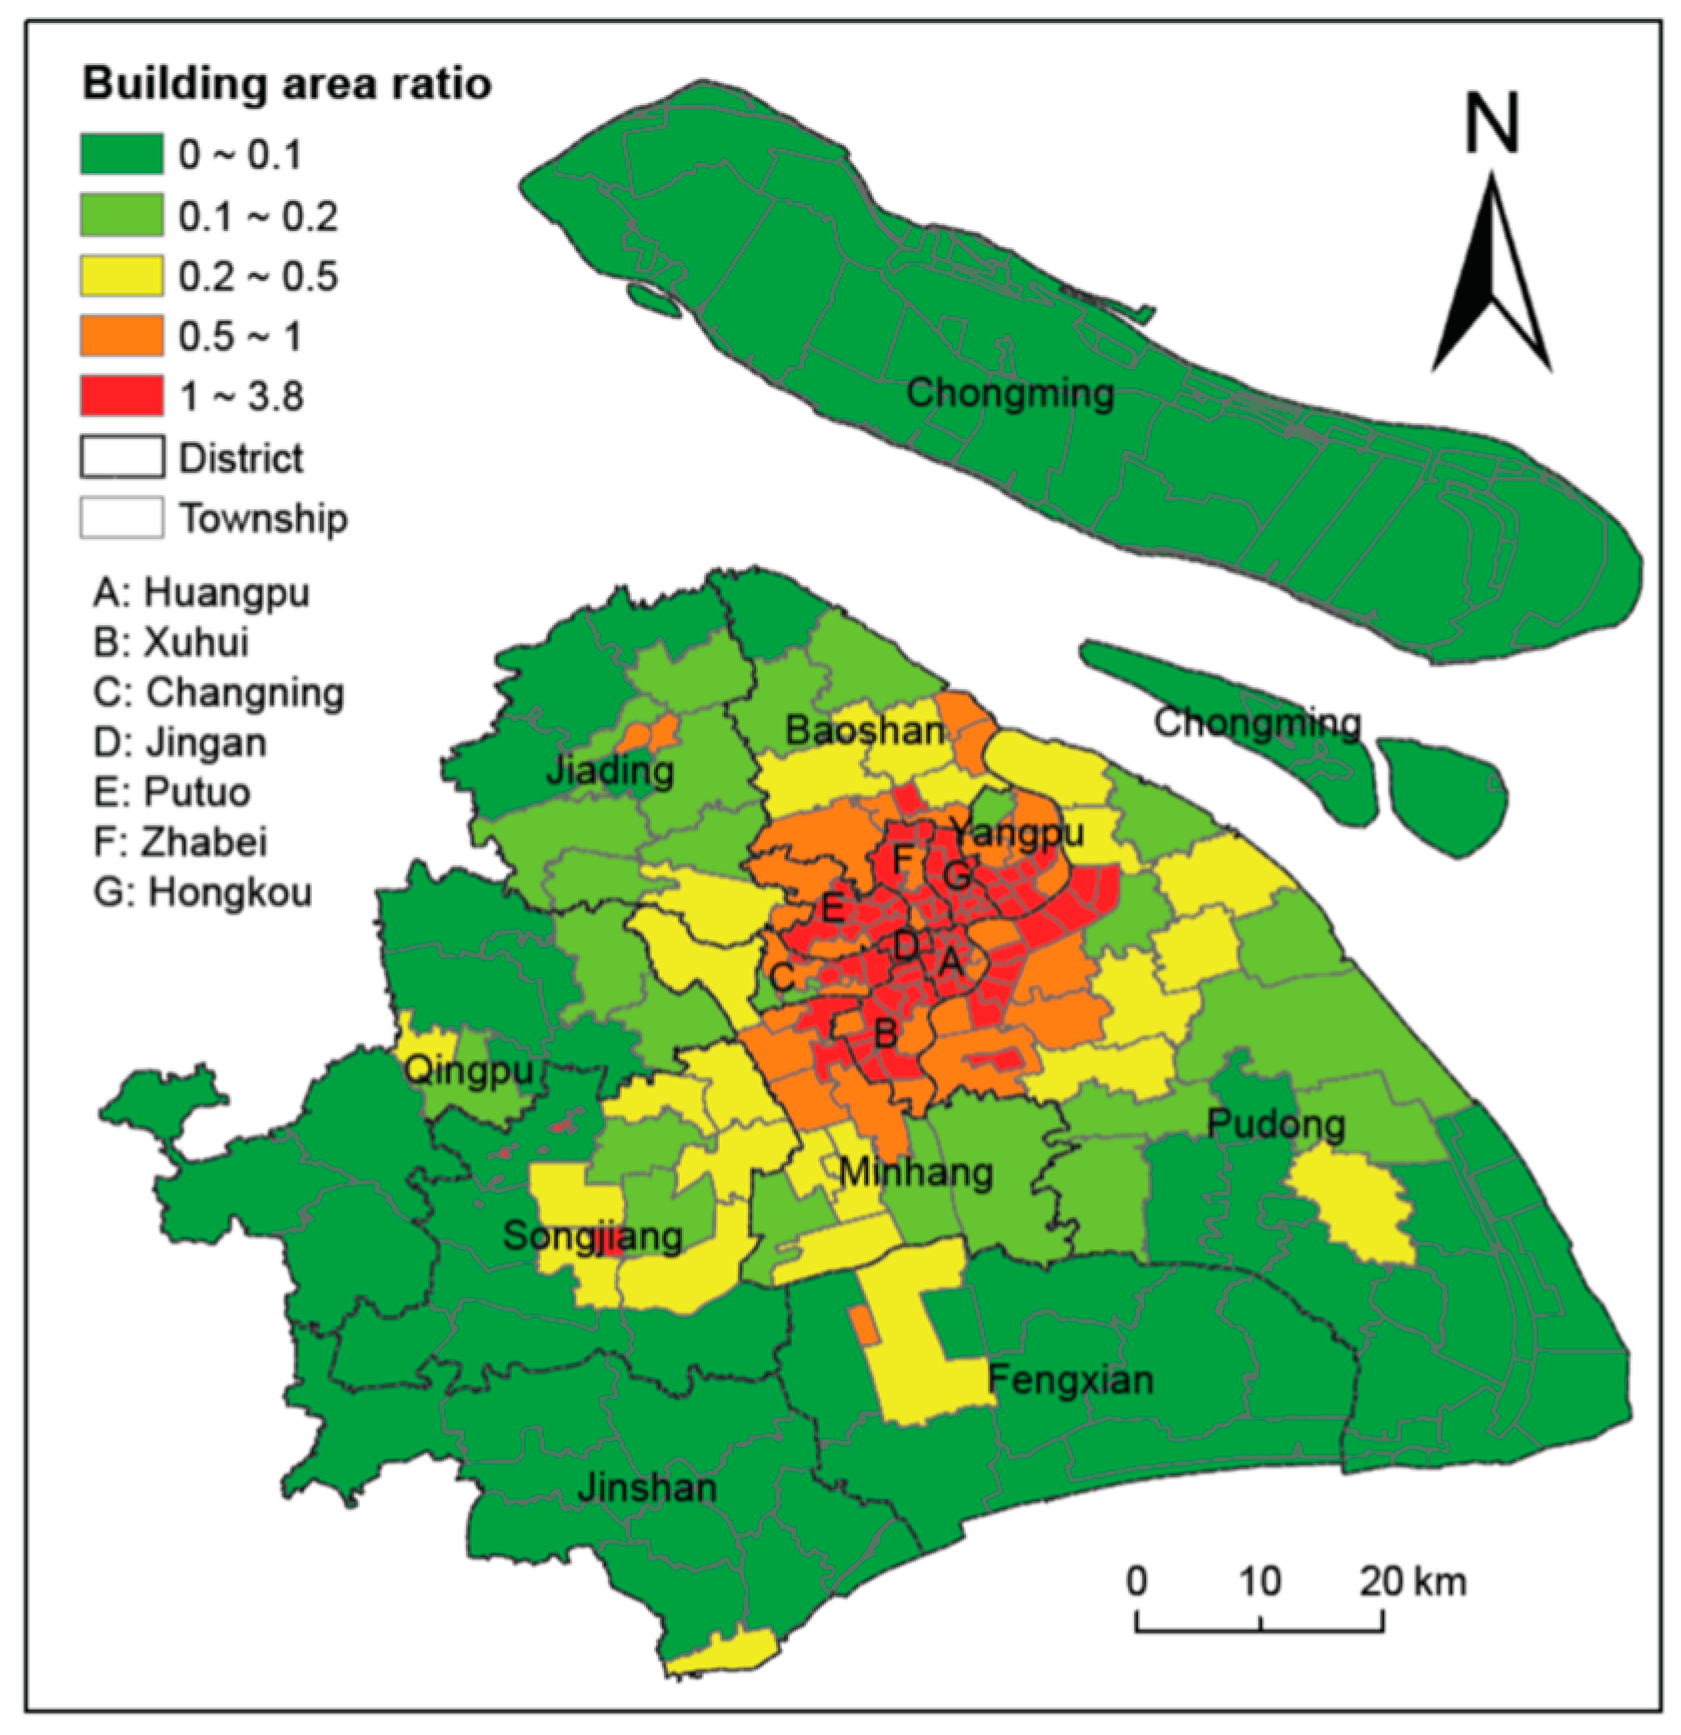 Building Asset Value Mapping in Support of Flood Risk Assessments: A Case Study of Shanghai, China